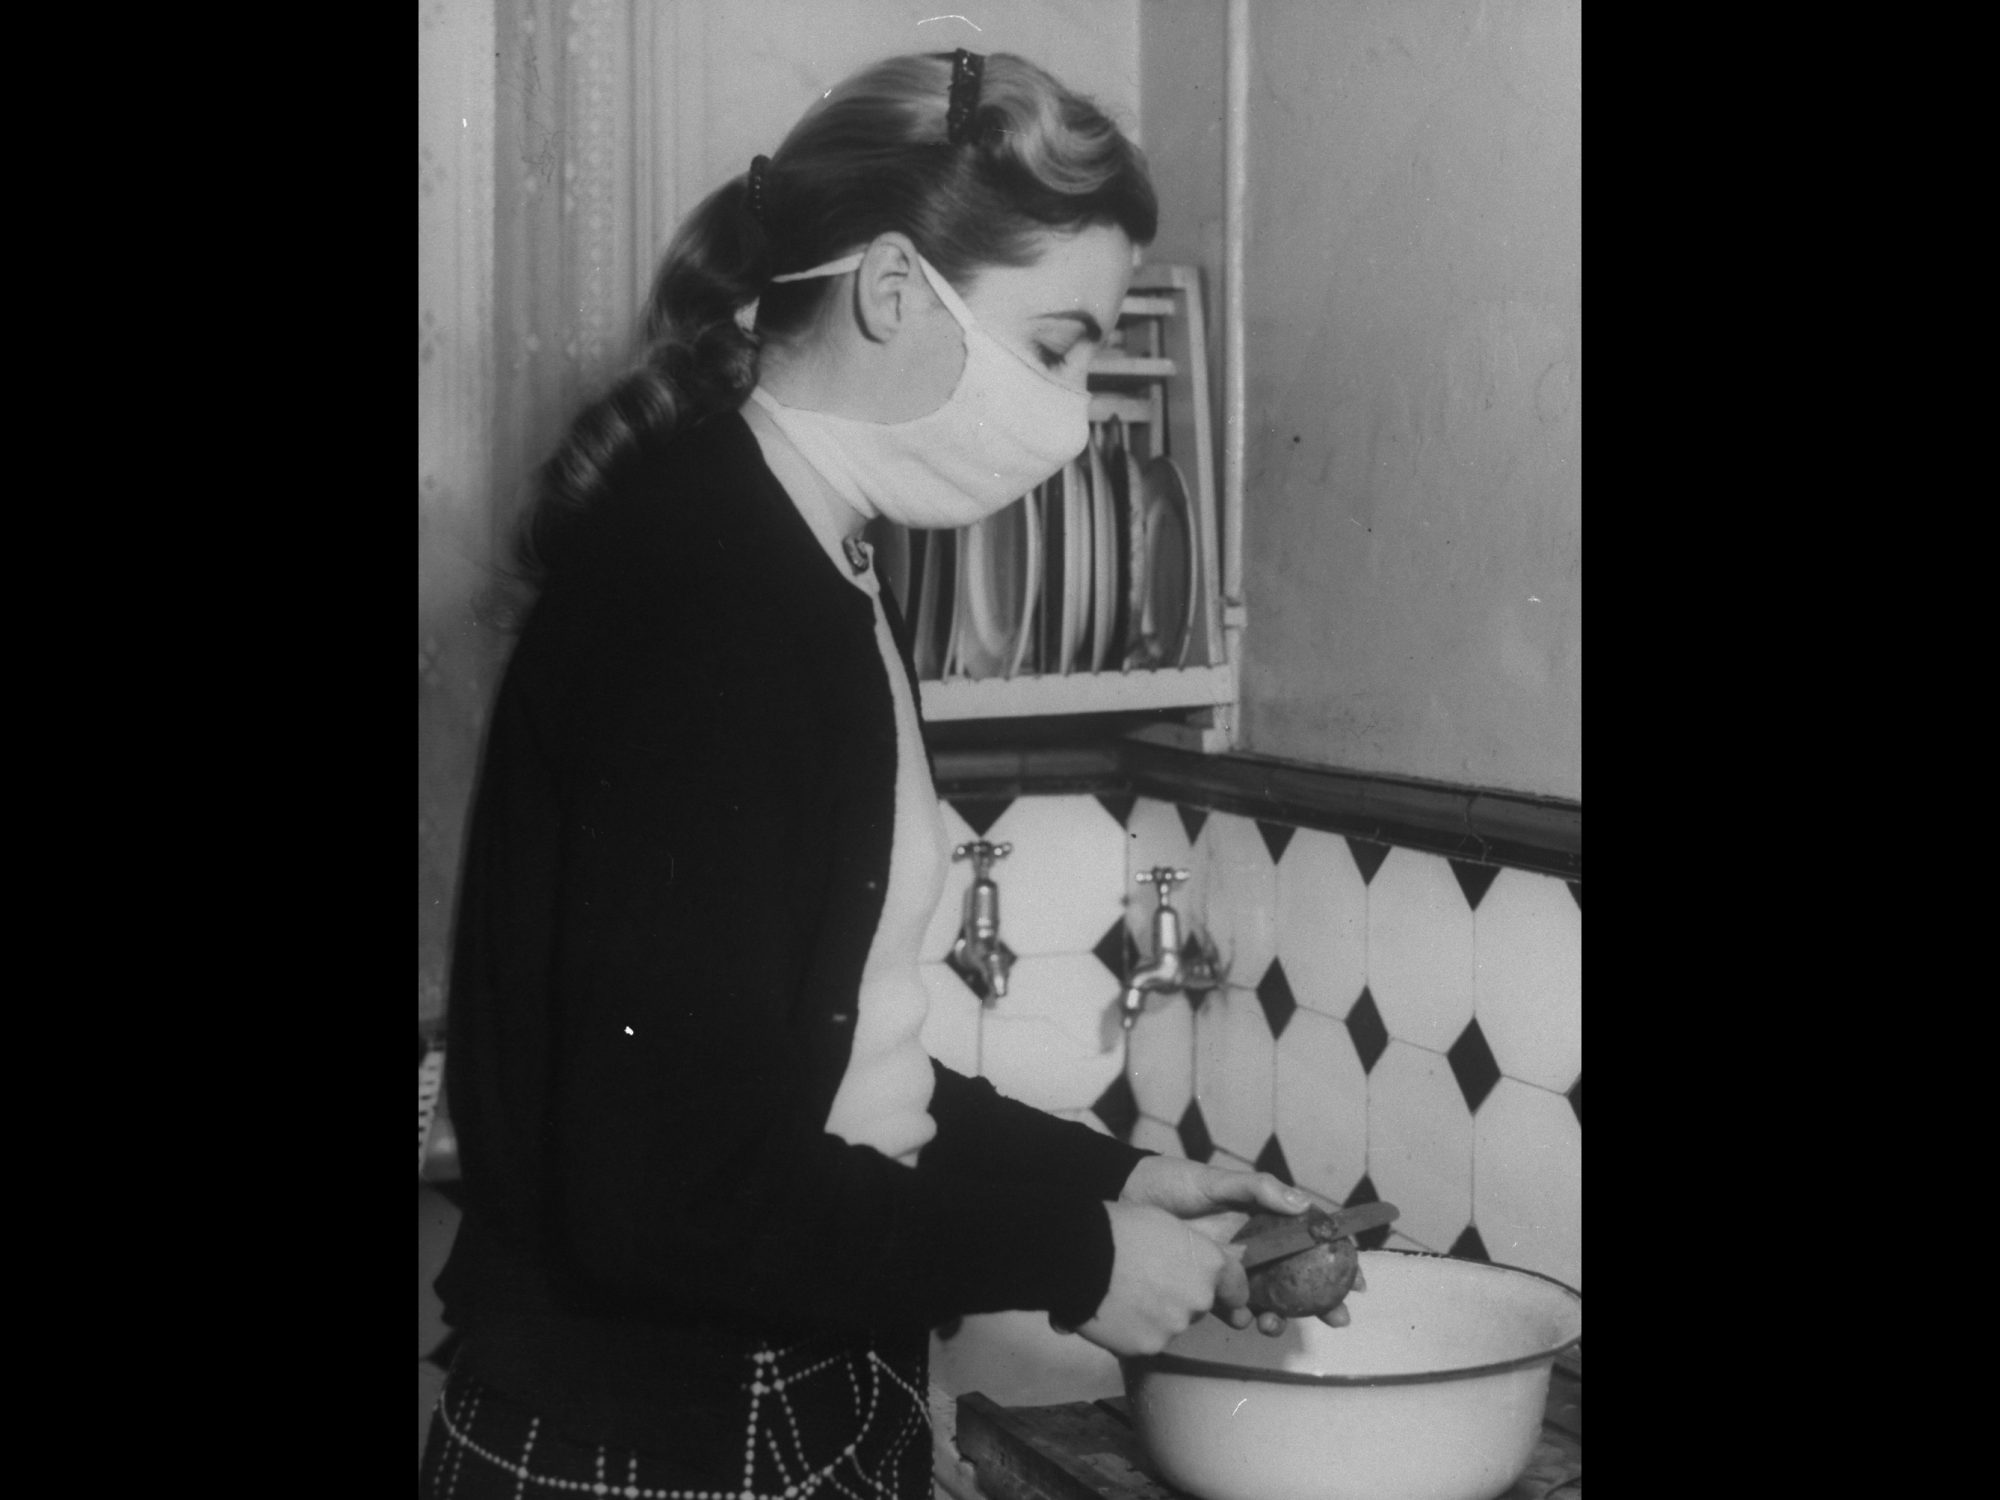 Young woman peeling potato in kitchen with a mask on